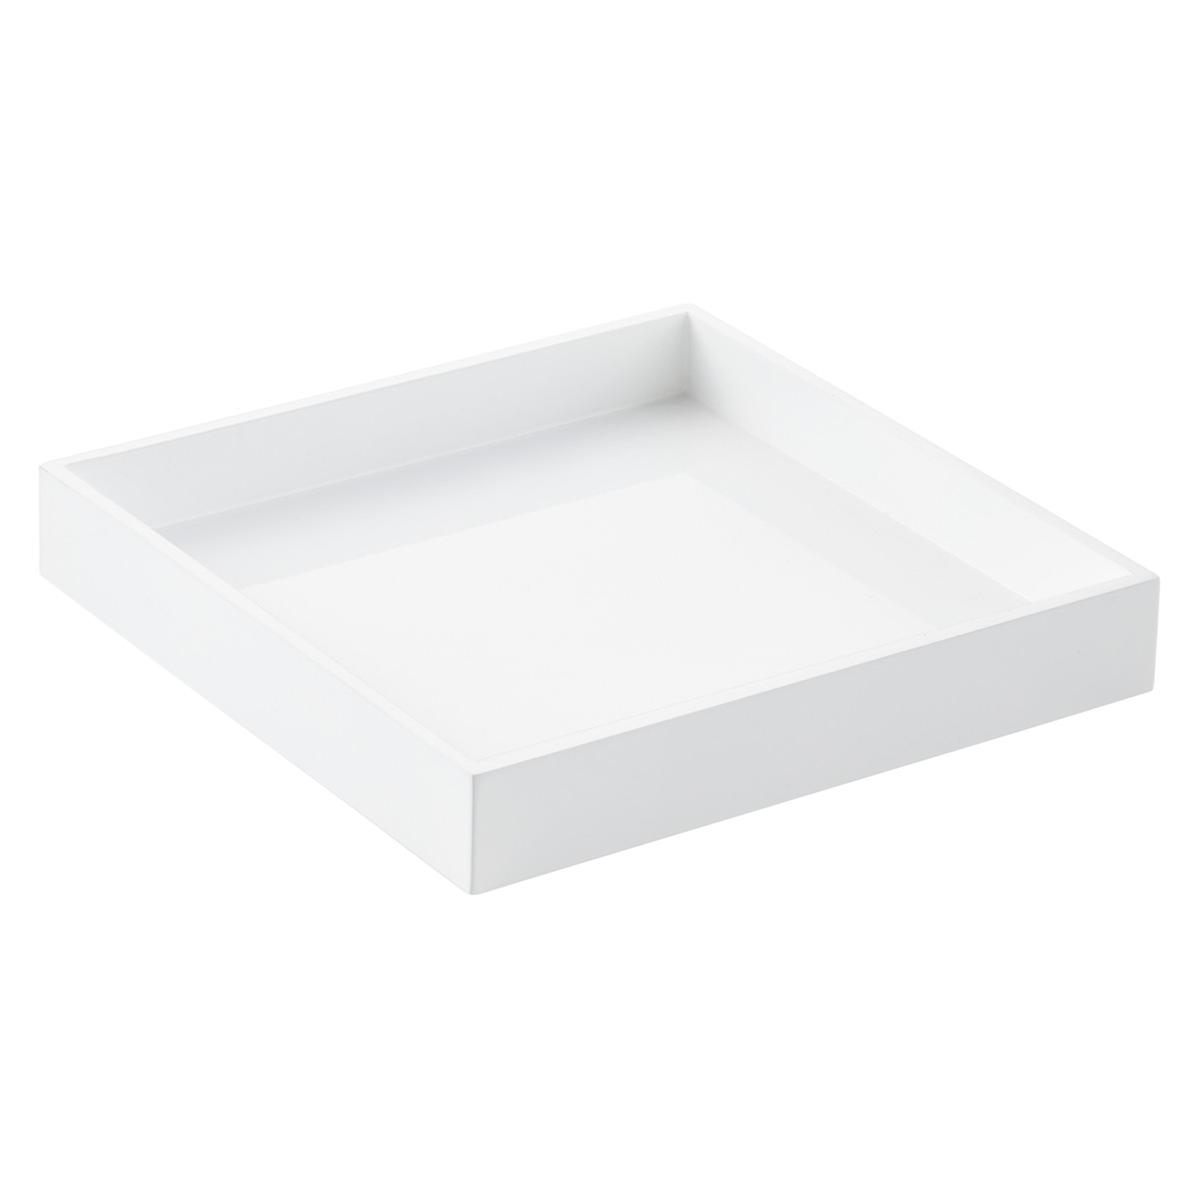 White Square Lacquered Tray